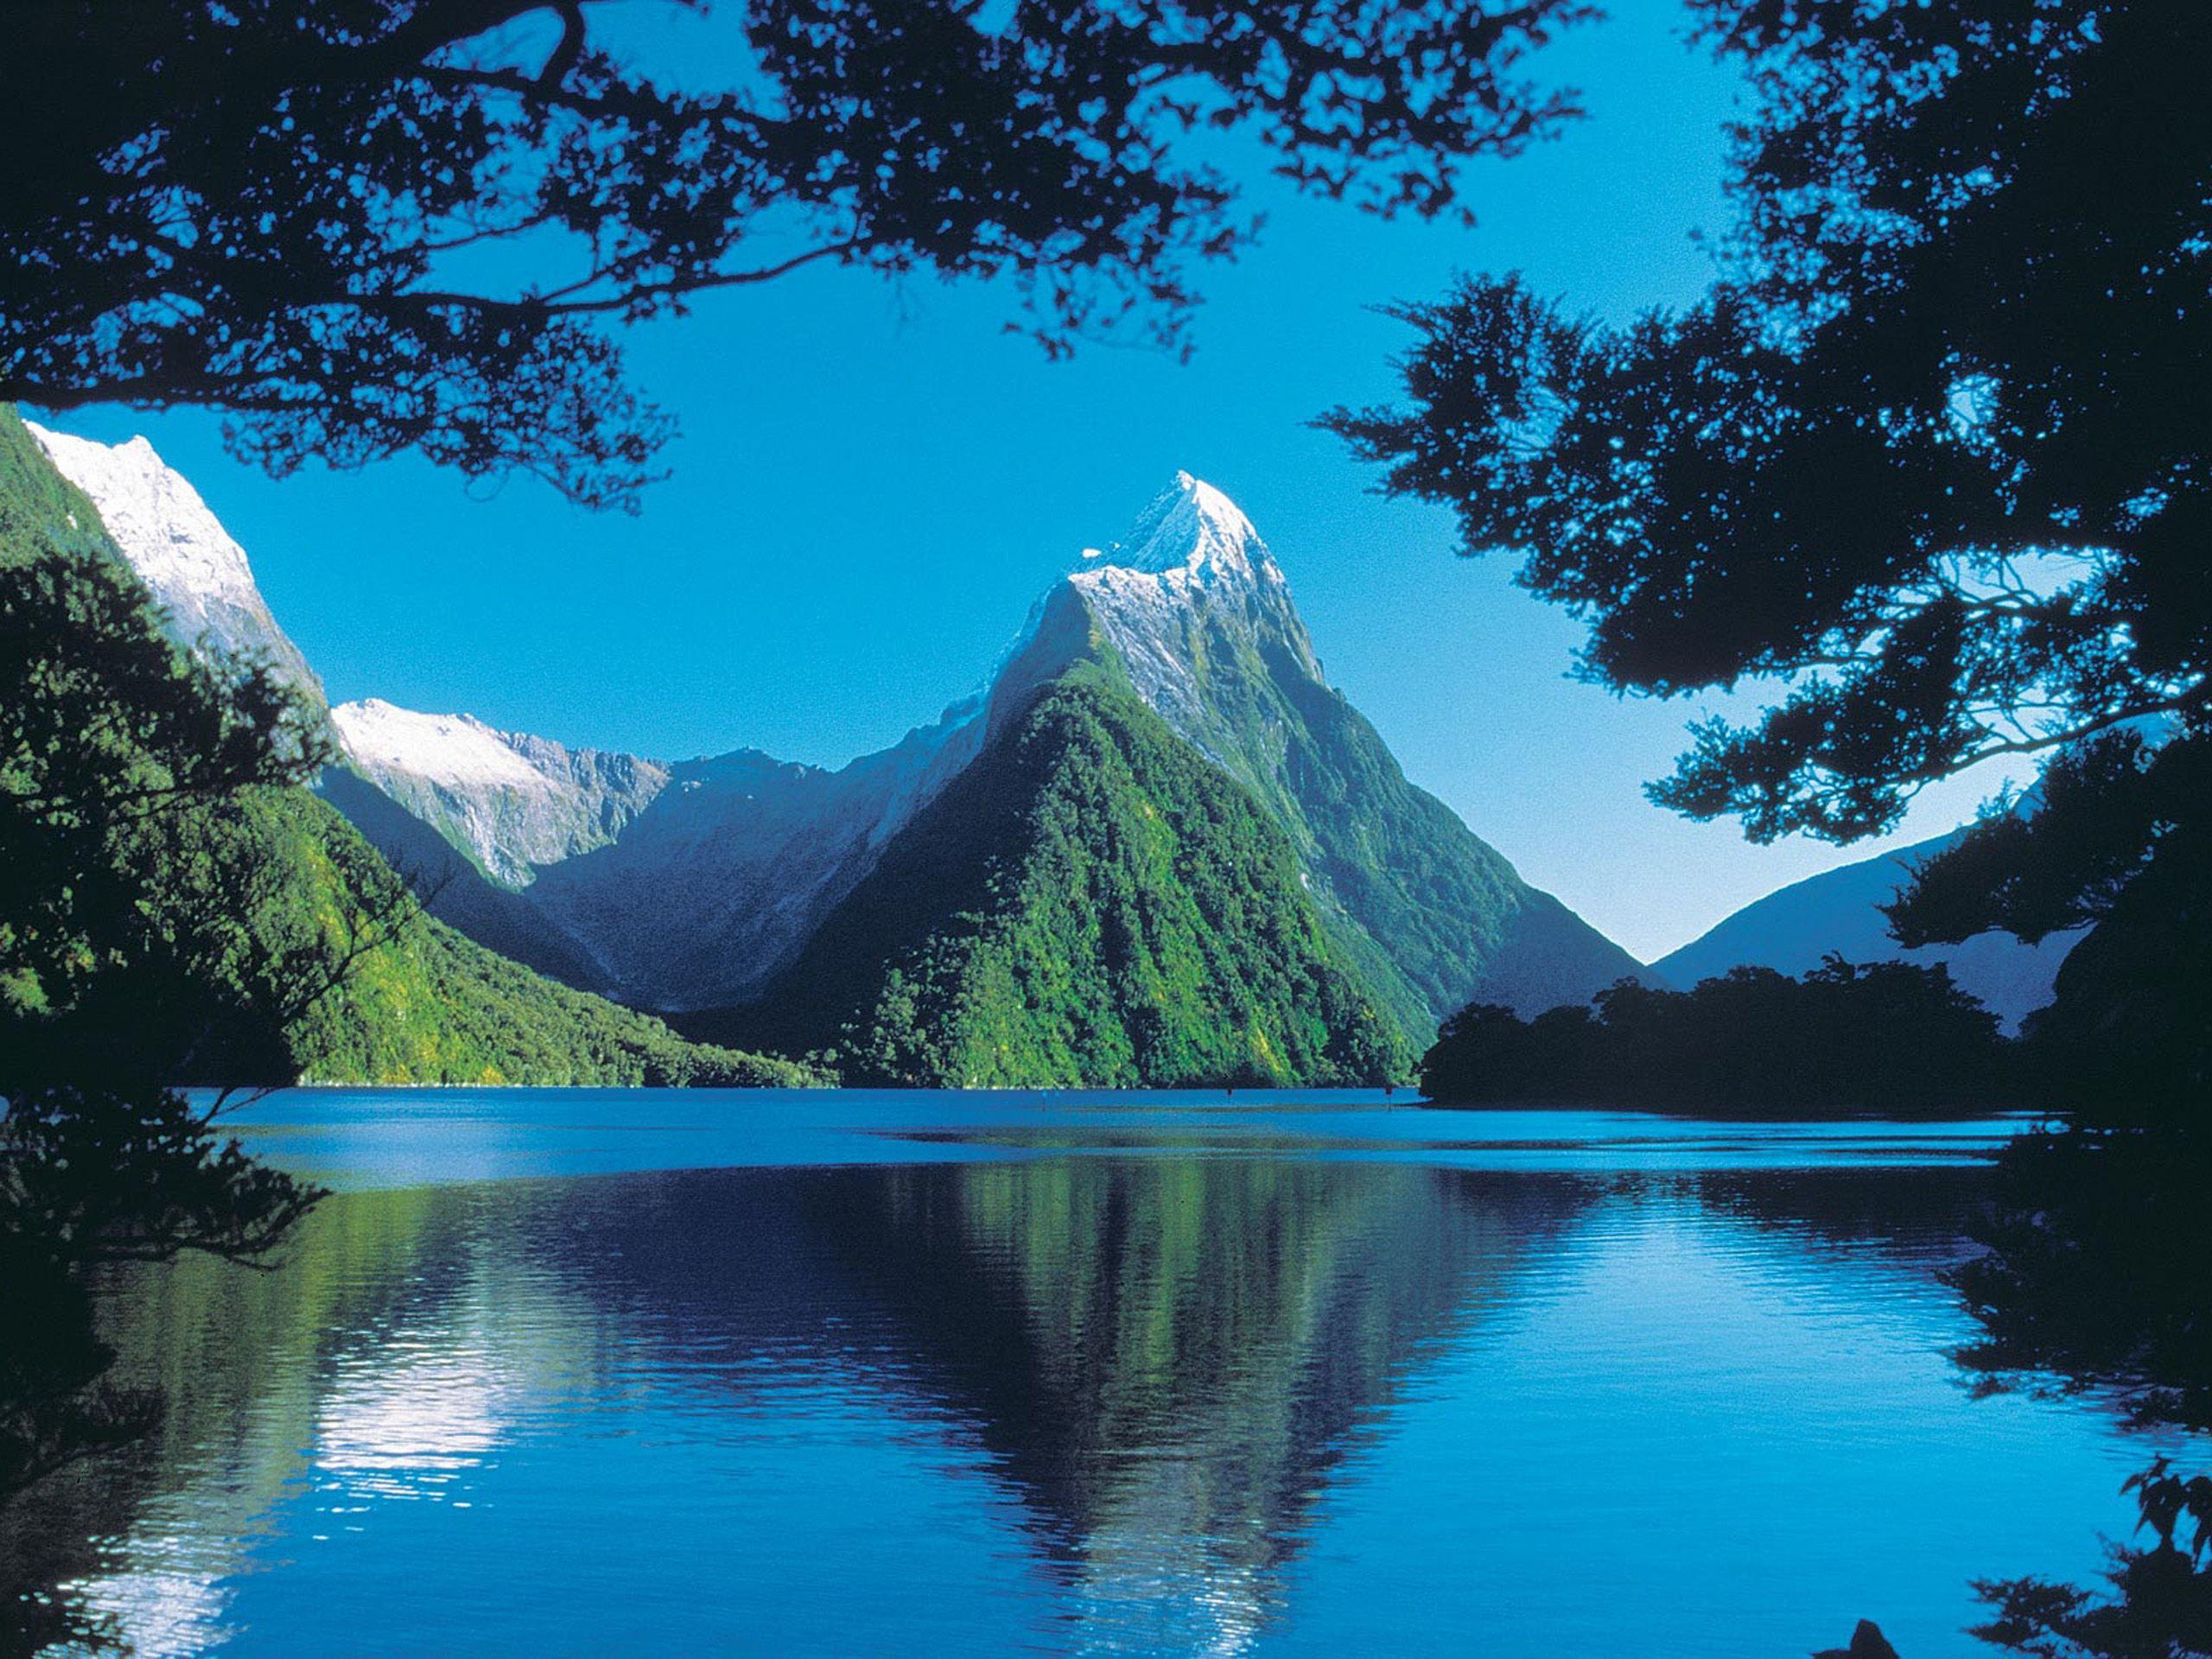 http://www.infiniteunknown.net/wp-content/uploads/2014/01/Milford-Sound-Fiordland-National-Park-New-Zealand.jpg